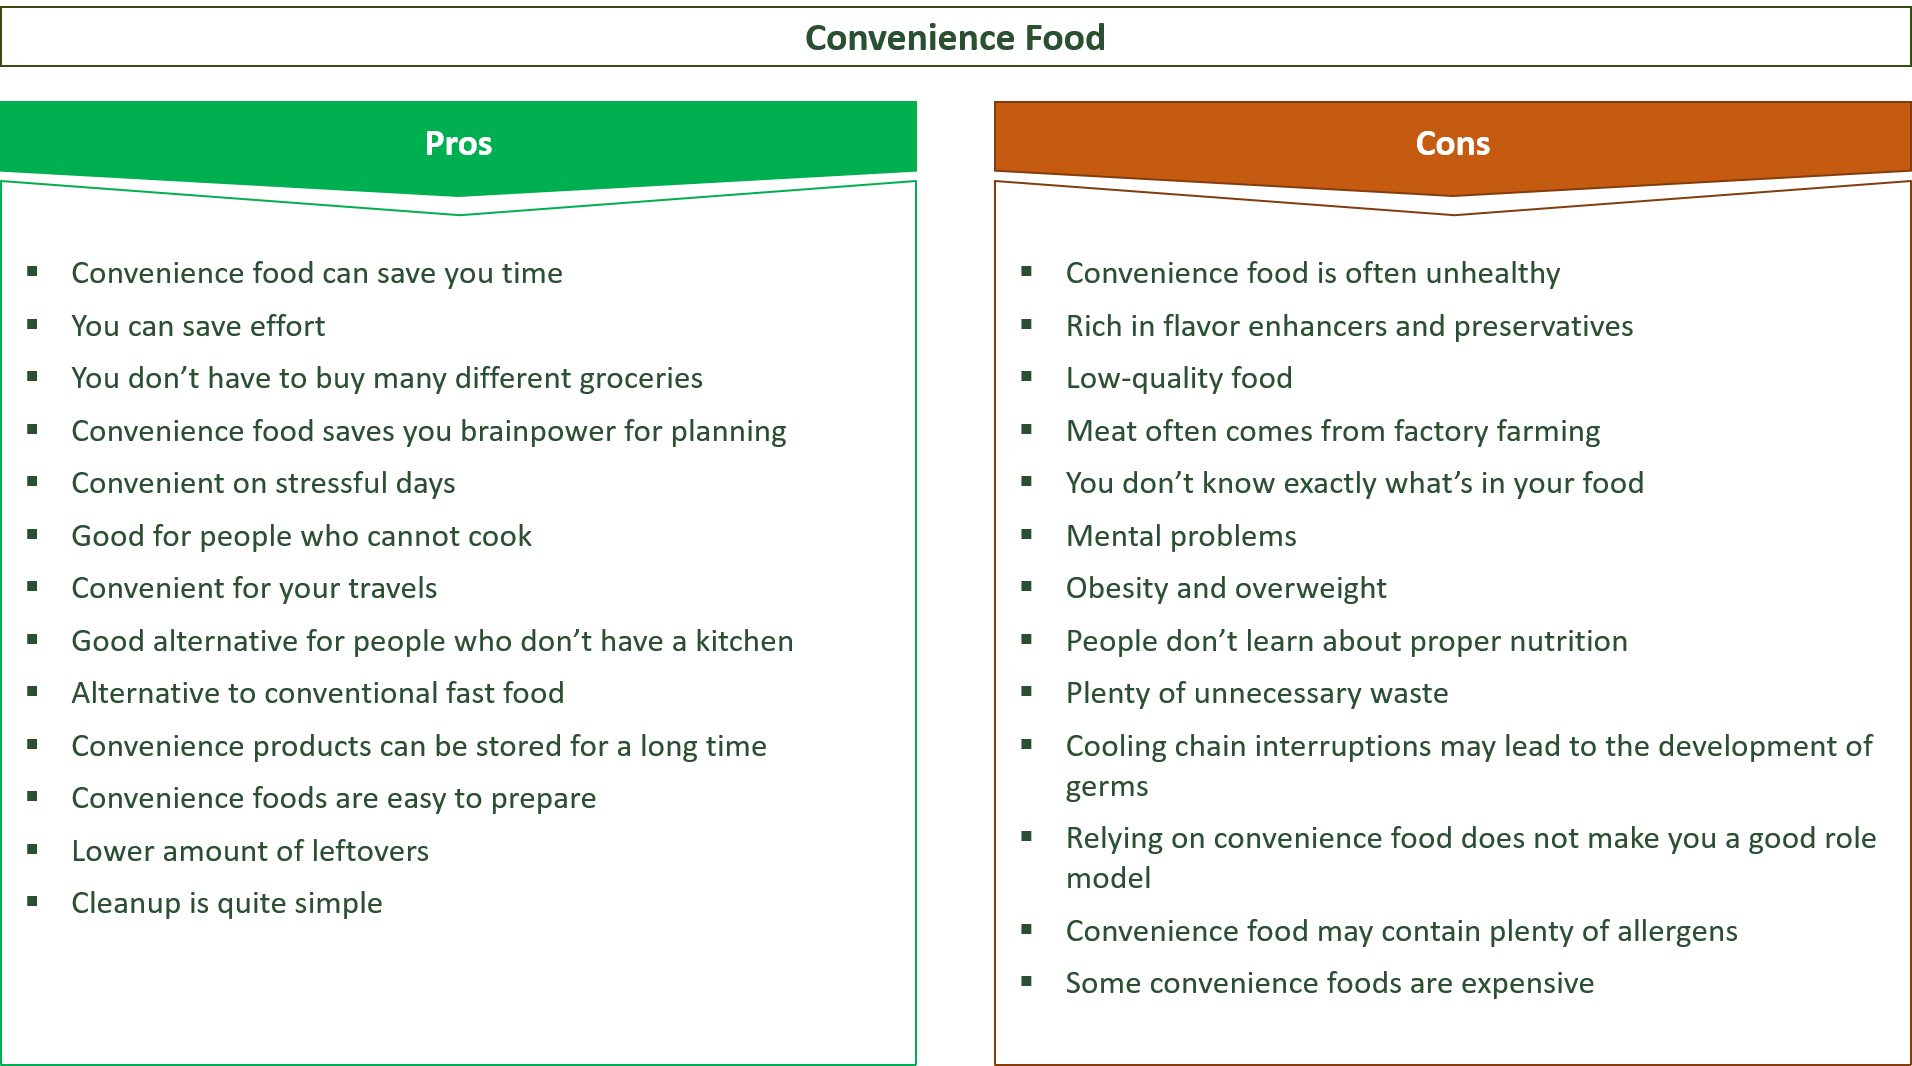 advantages and disadvantages of a convenience food